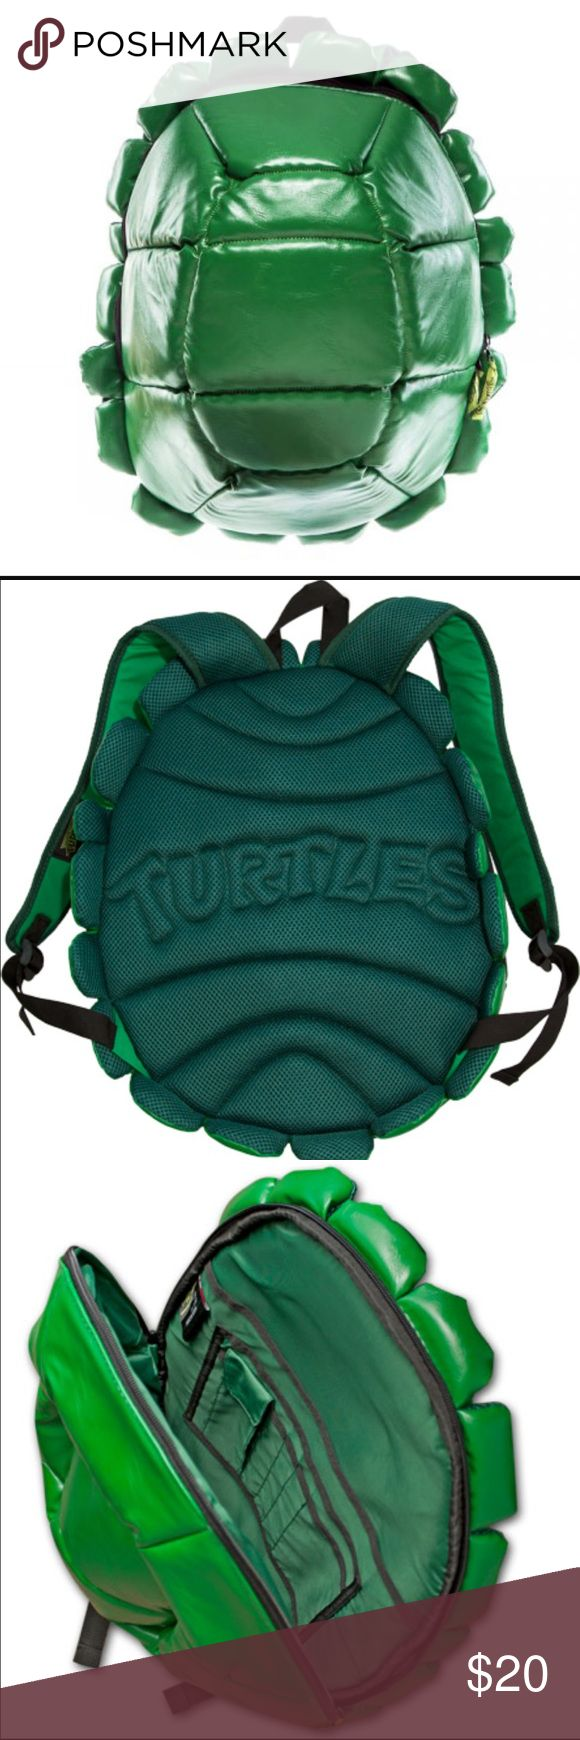 Teenage Mutant Ninja Turtles Shell Backpack Super awesome TMNT shell Backpack in mint condition. Used a couple times, more of an impulse buy for me. Clearing out my closet for a mug move coming up soon! Reasonable offers welcome!! Nickelodeon Accessories Bags